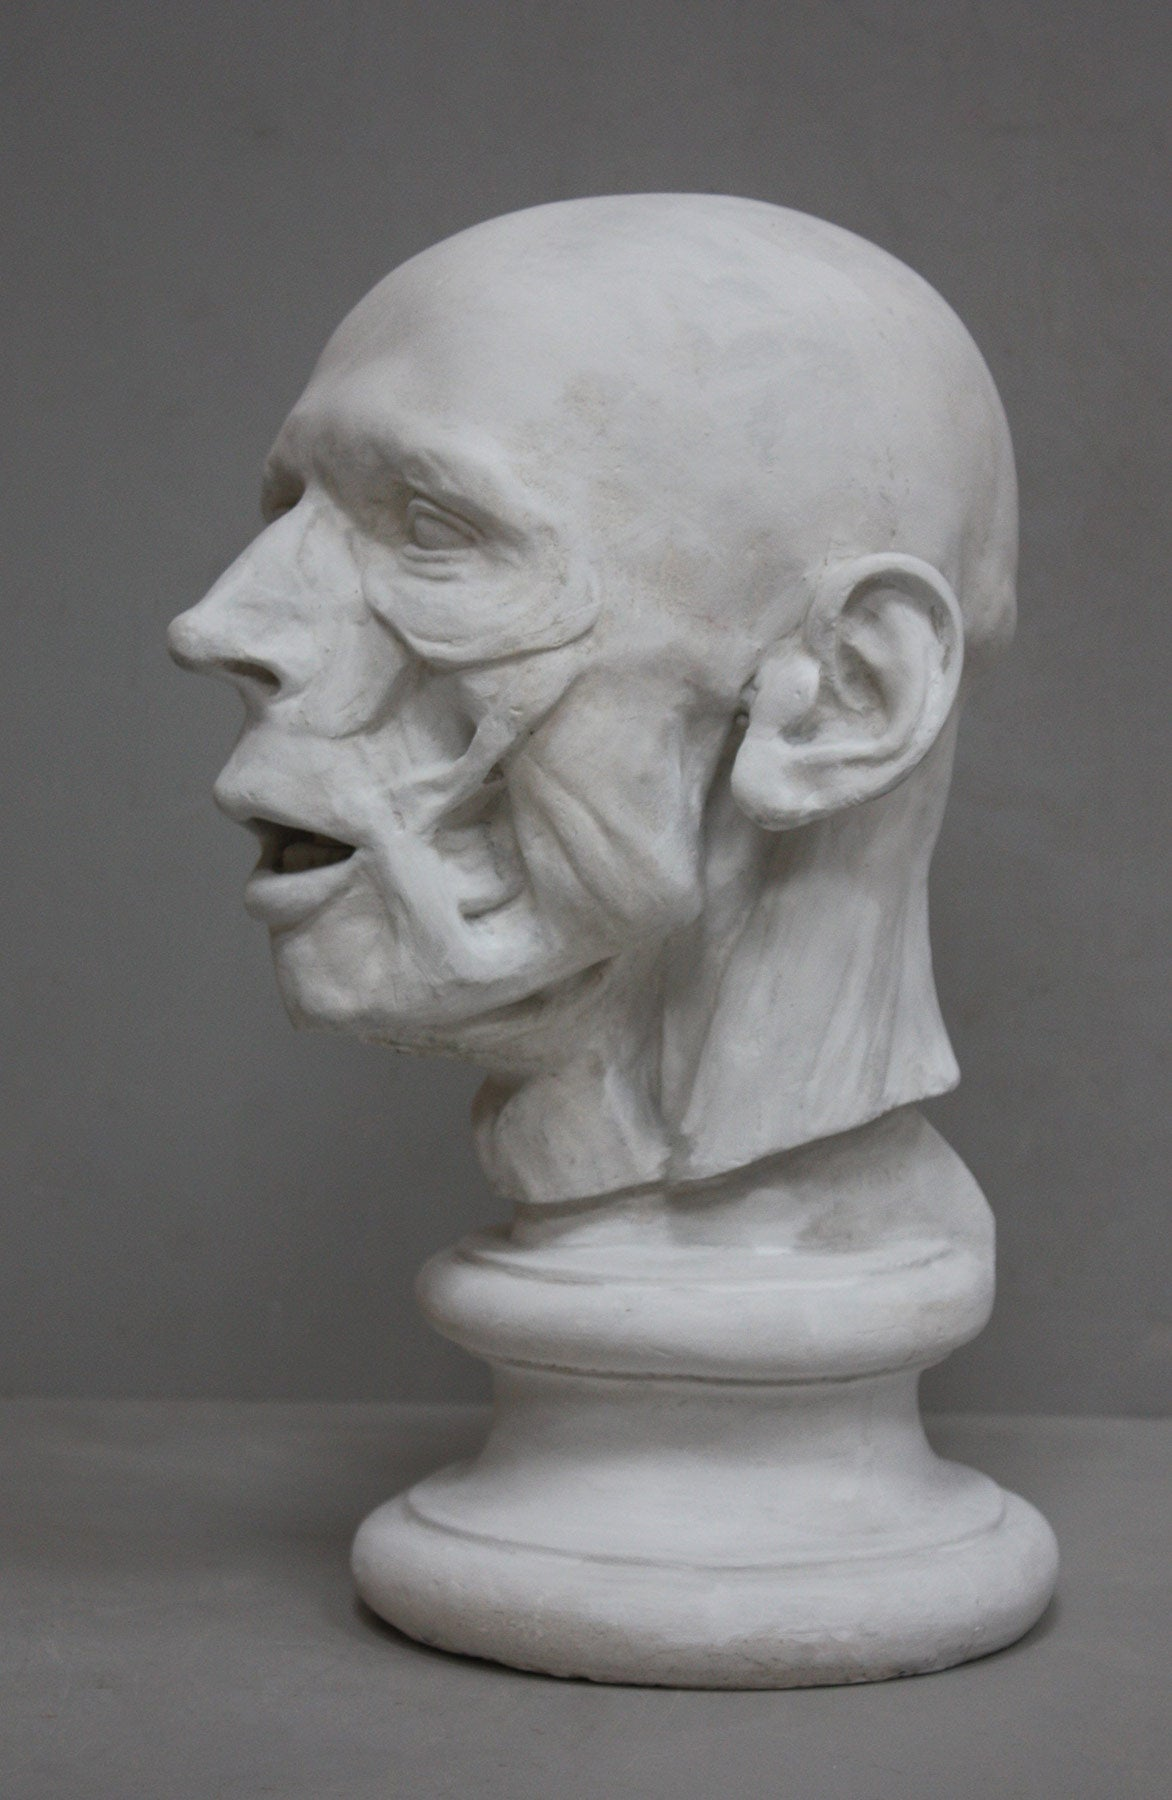 plaster cast anatomical sculpture of man's head on socle base with a gray background